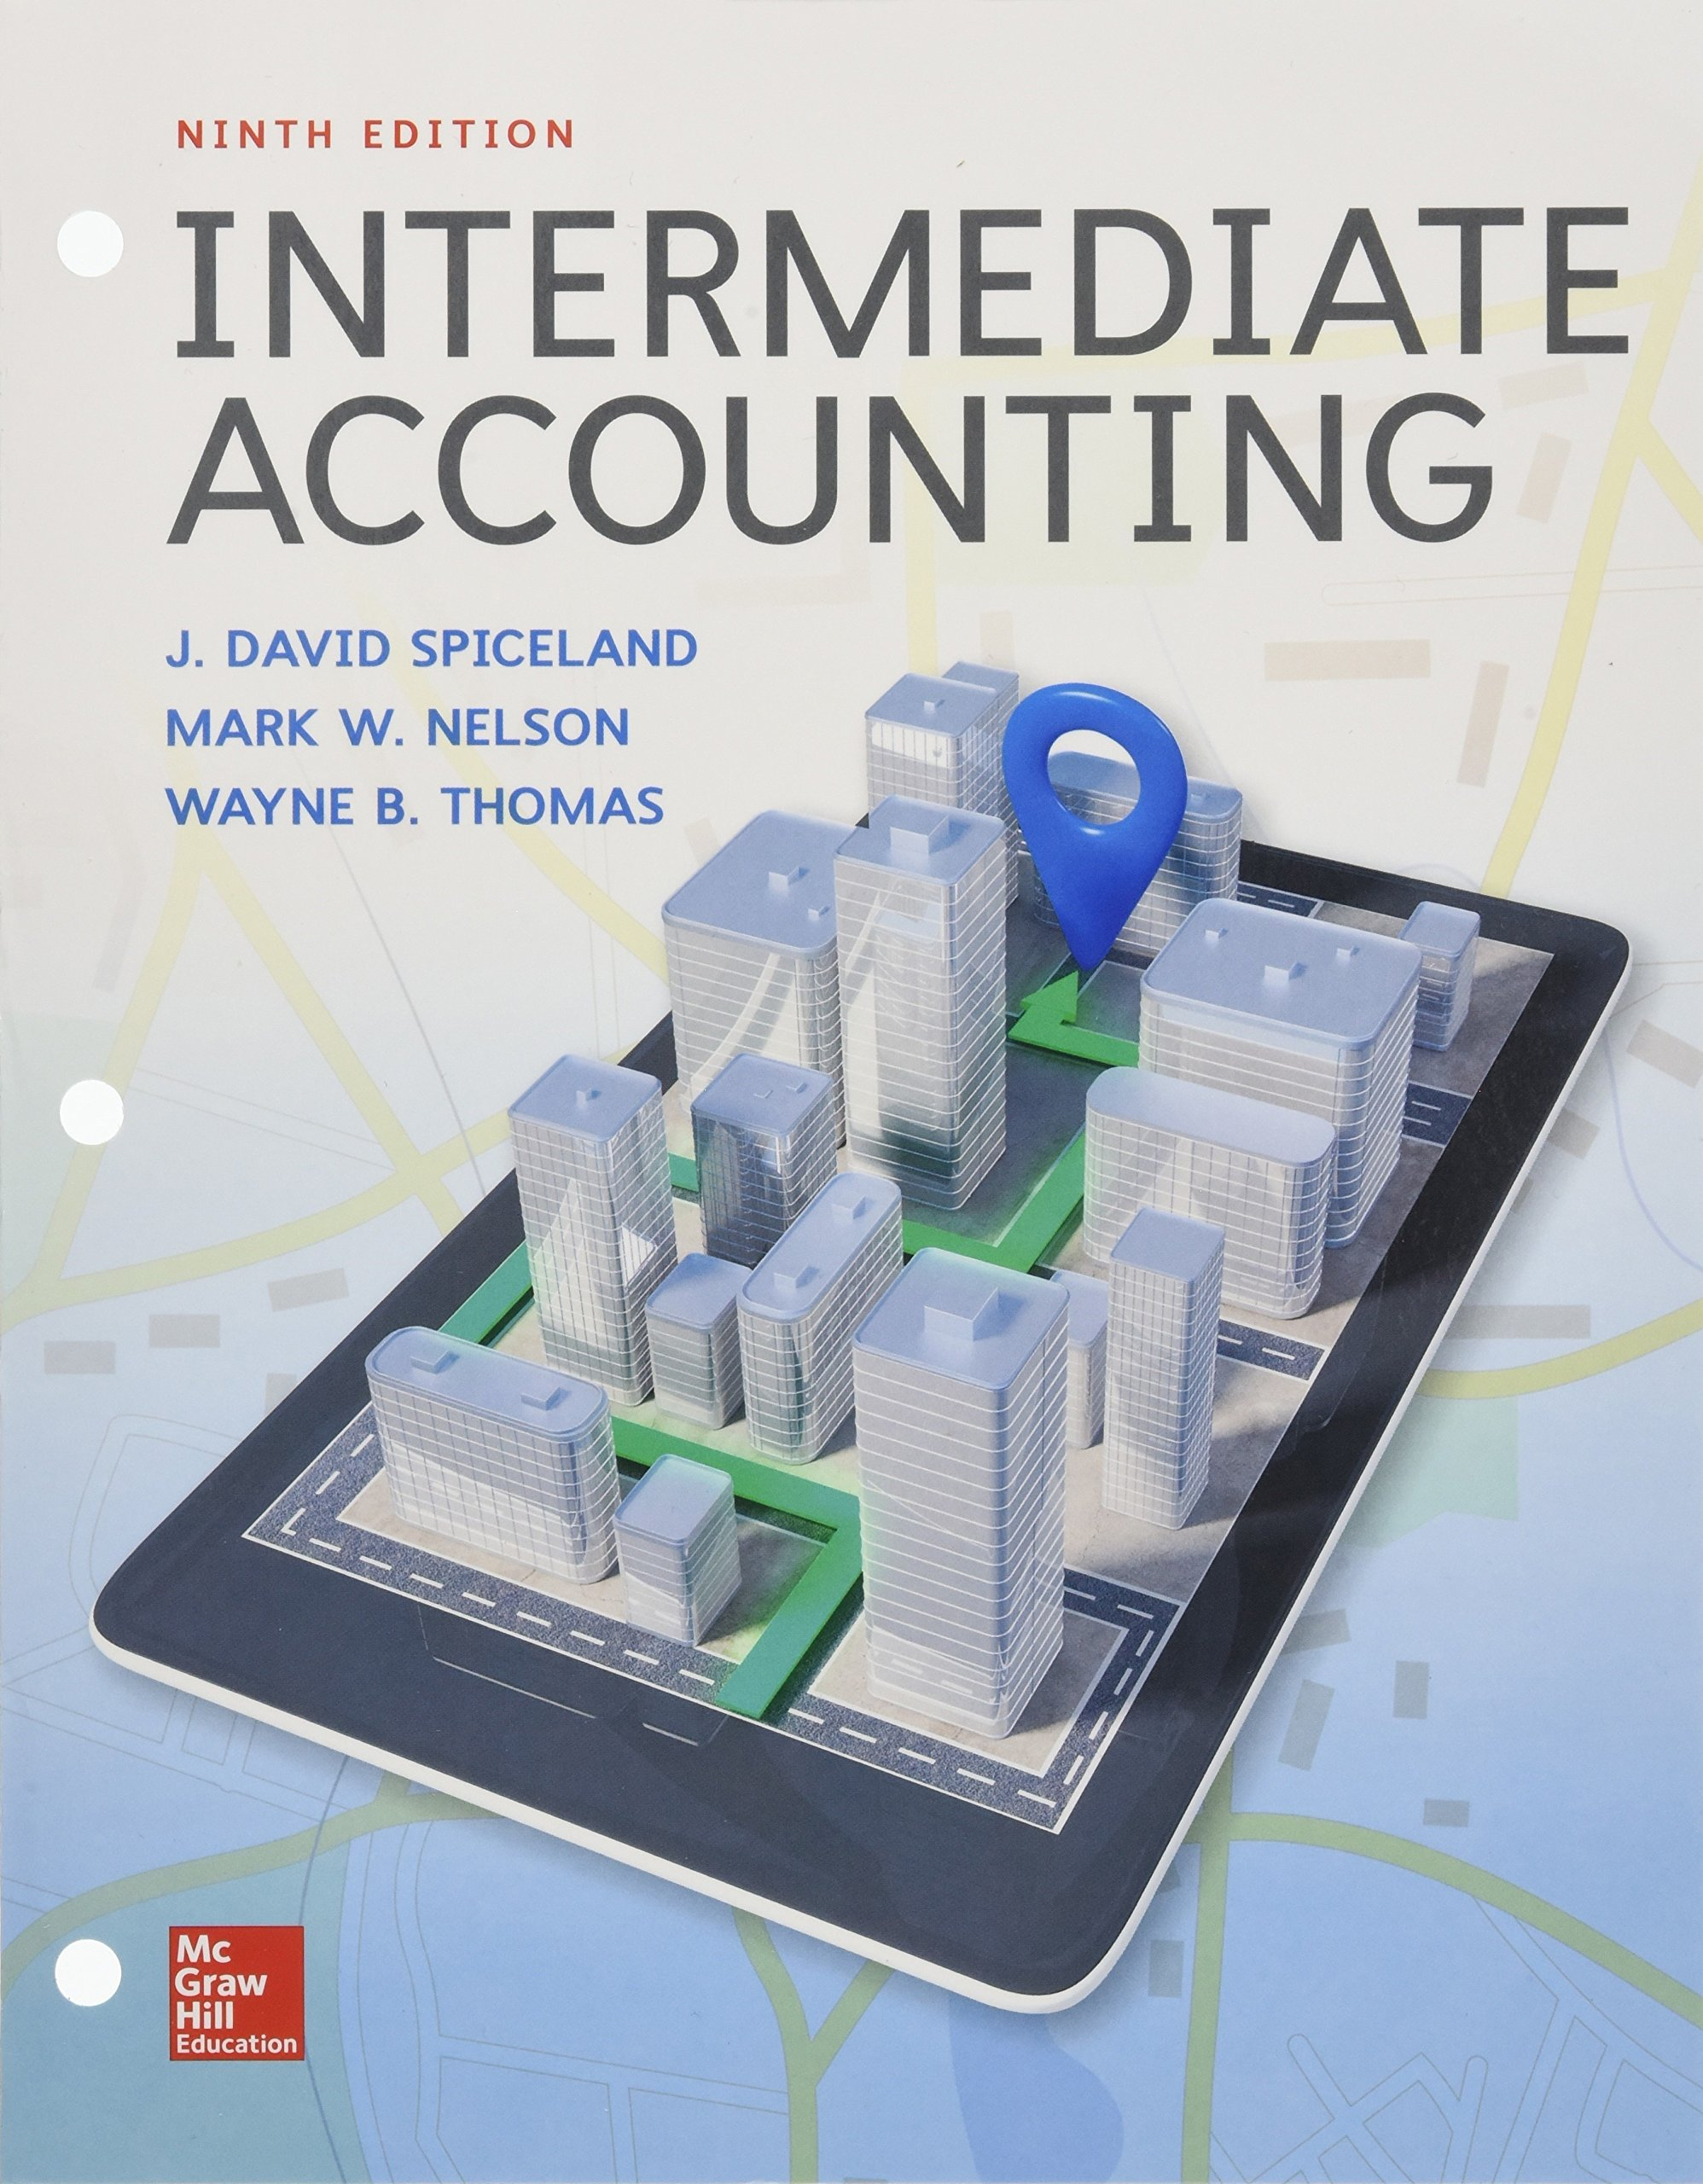 Loose Leaf Intermediate Accounting by McGraw-Hill Education